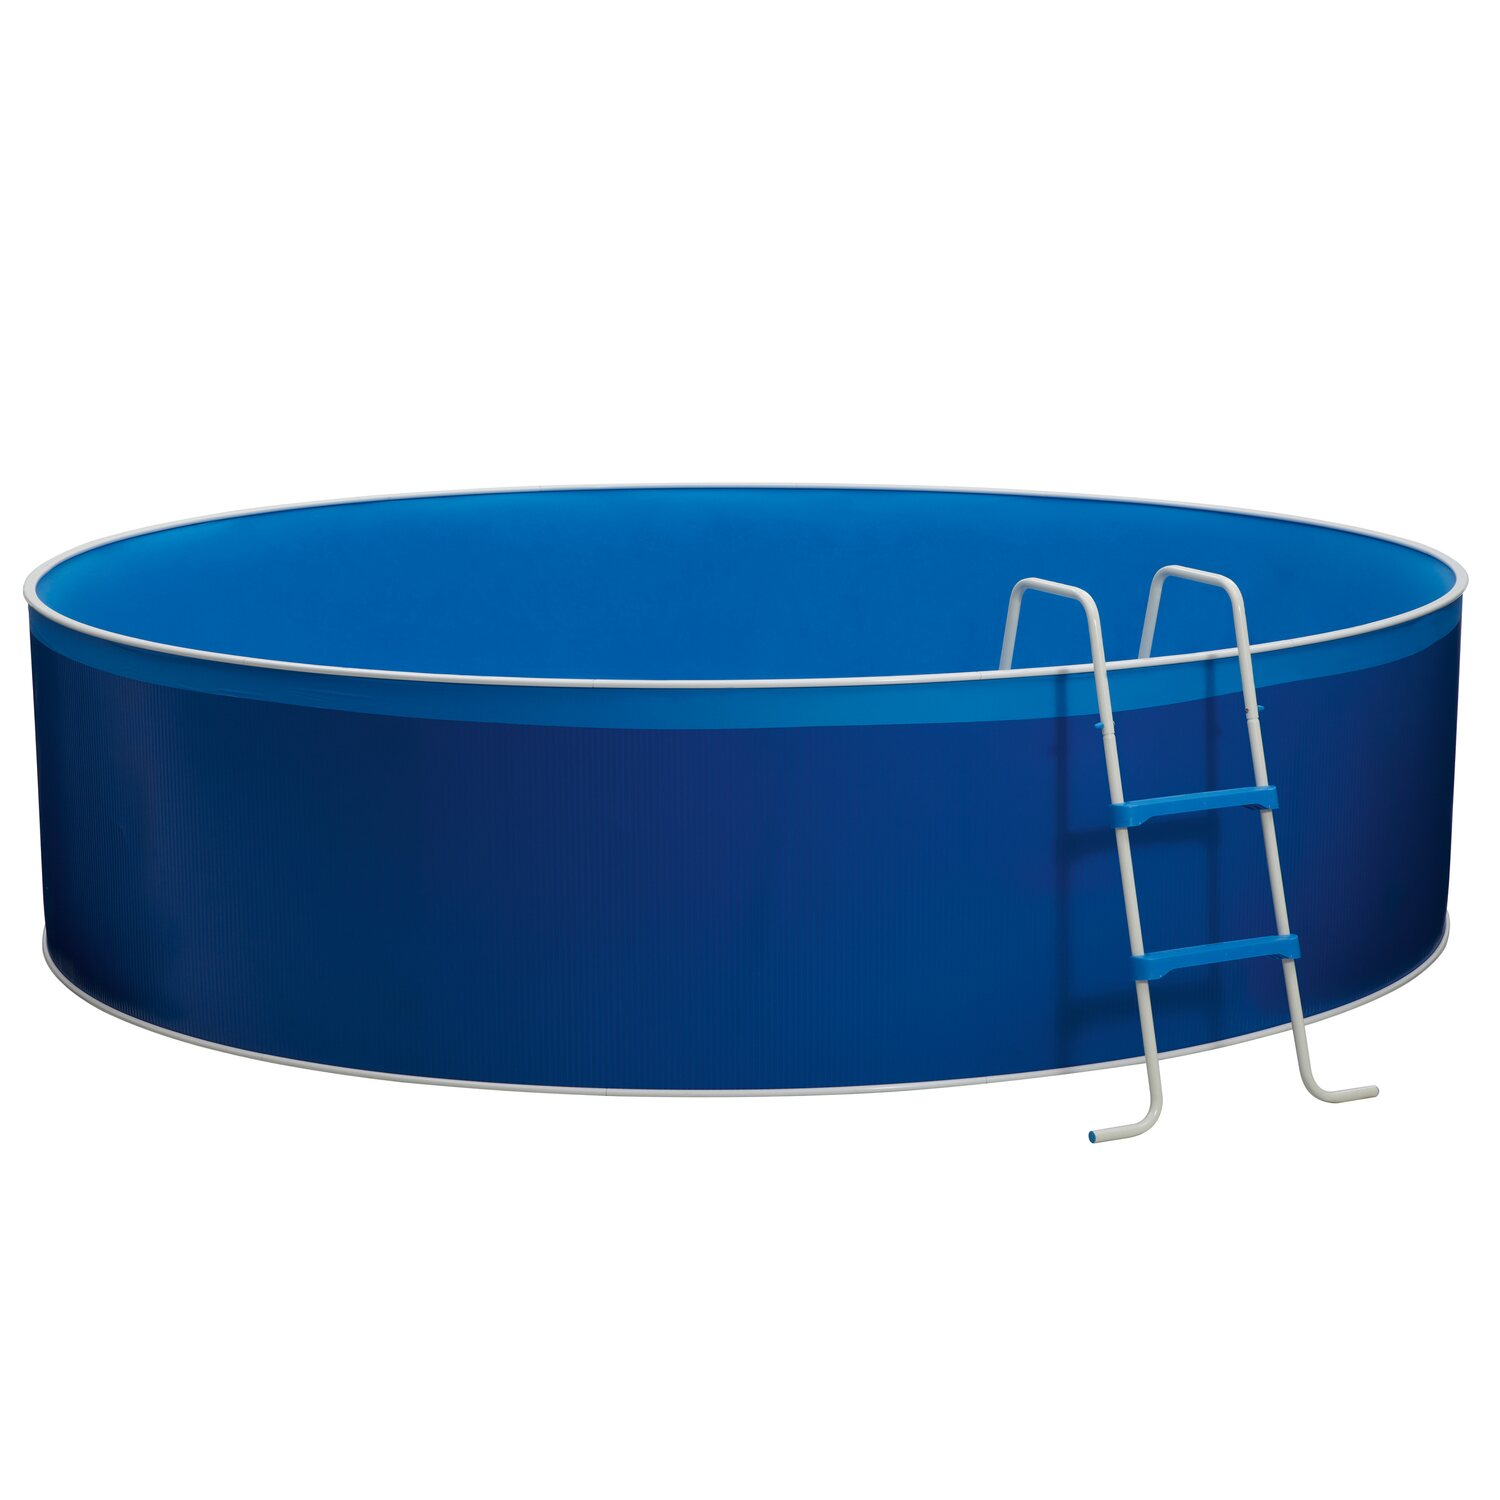 Cmi stahlwand swimming pool set 460 cm x 90 cm kaufen for Obi pool set